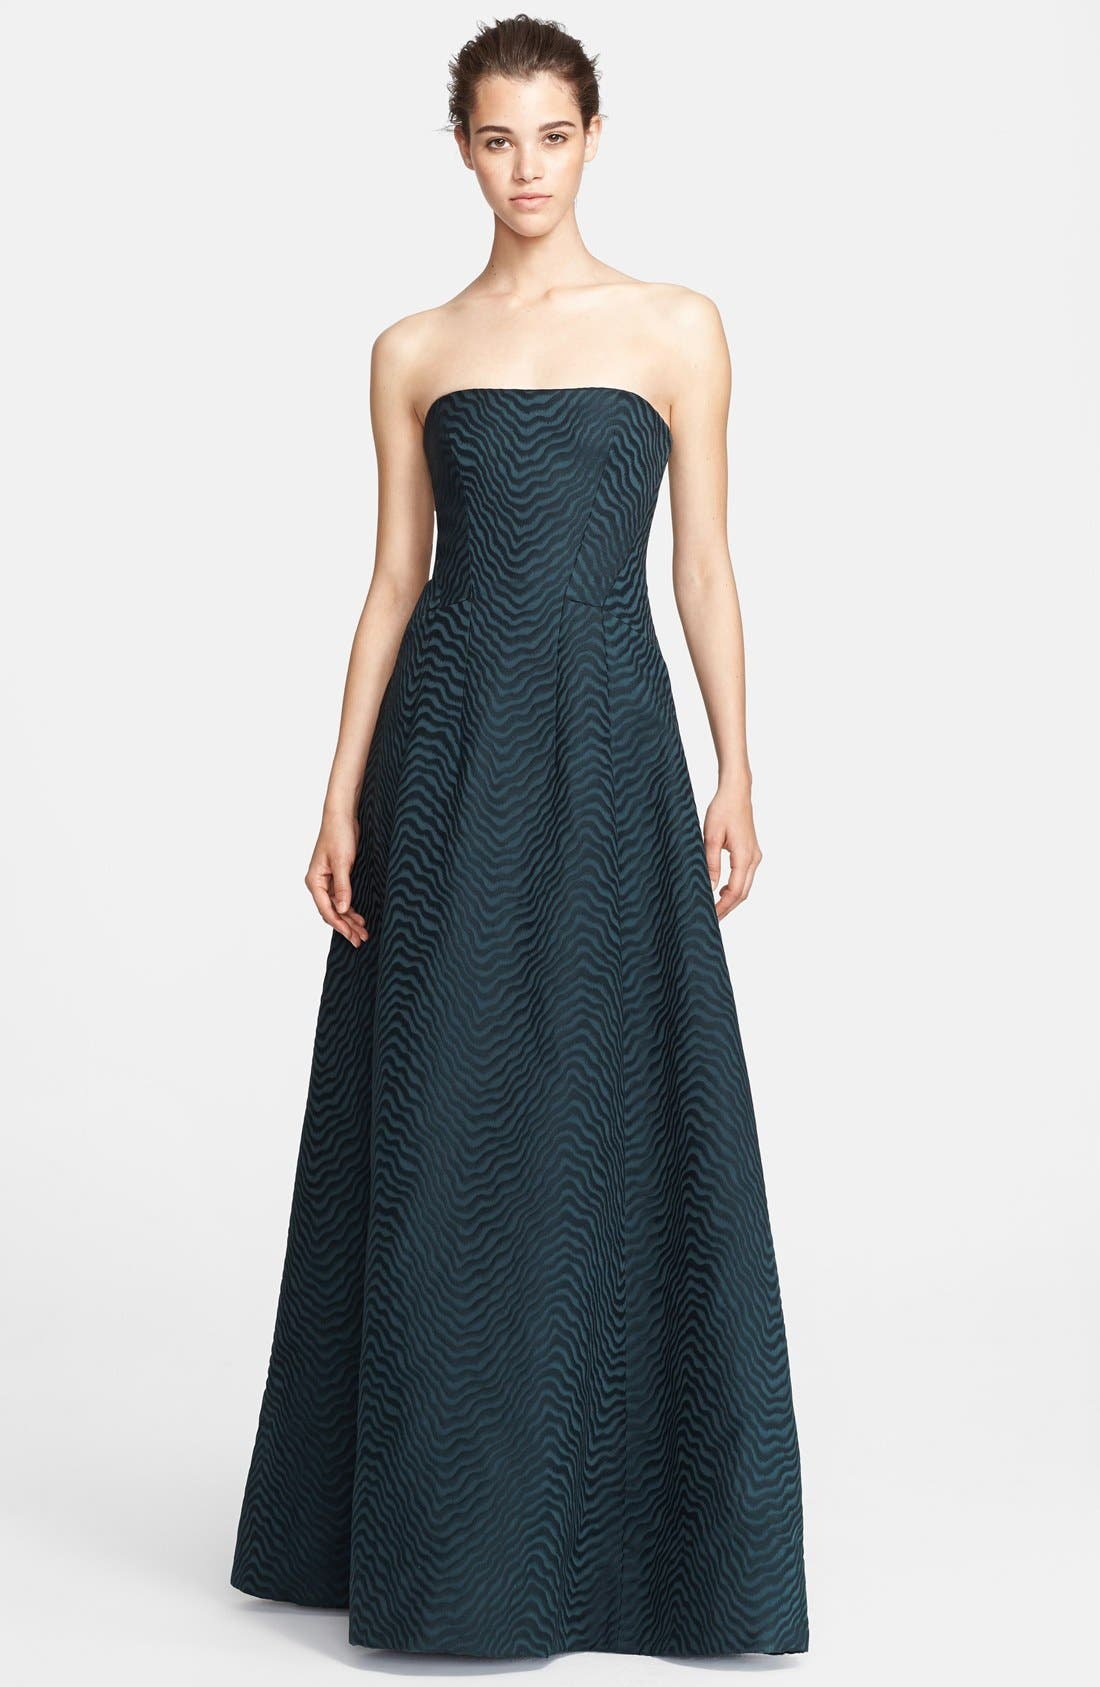 Alternate Image 1 Selected - Jason Wu Jacquard Strapless A-Line Gown